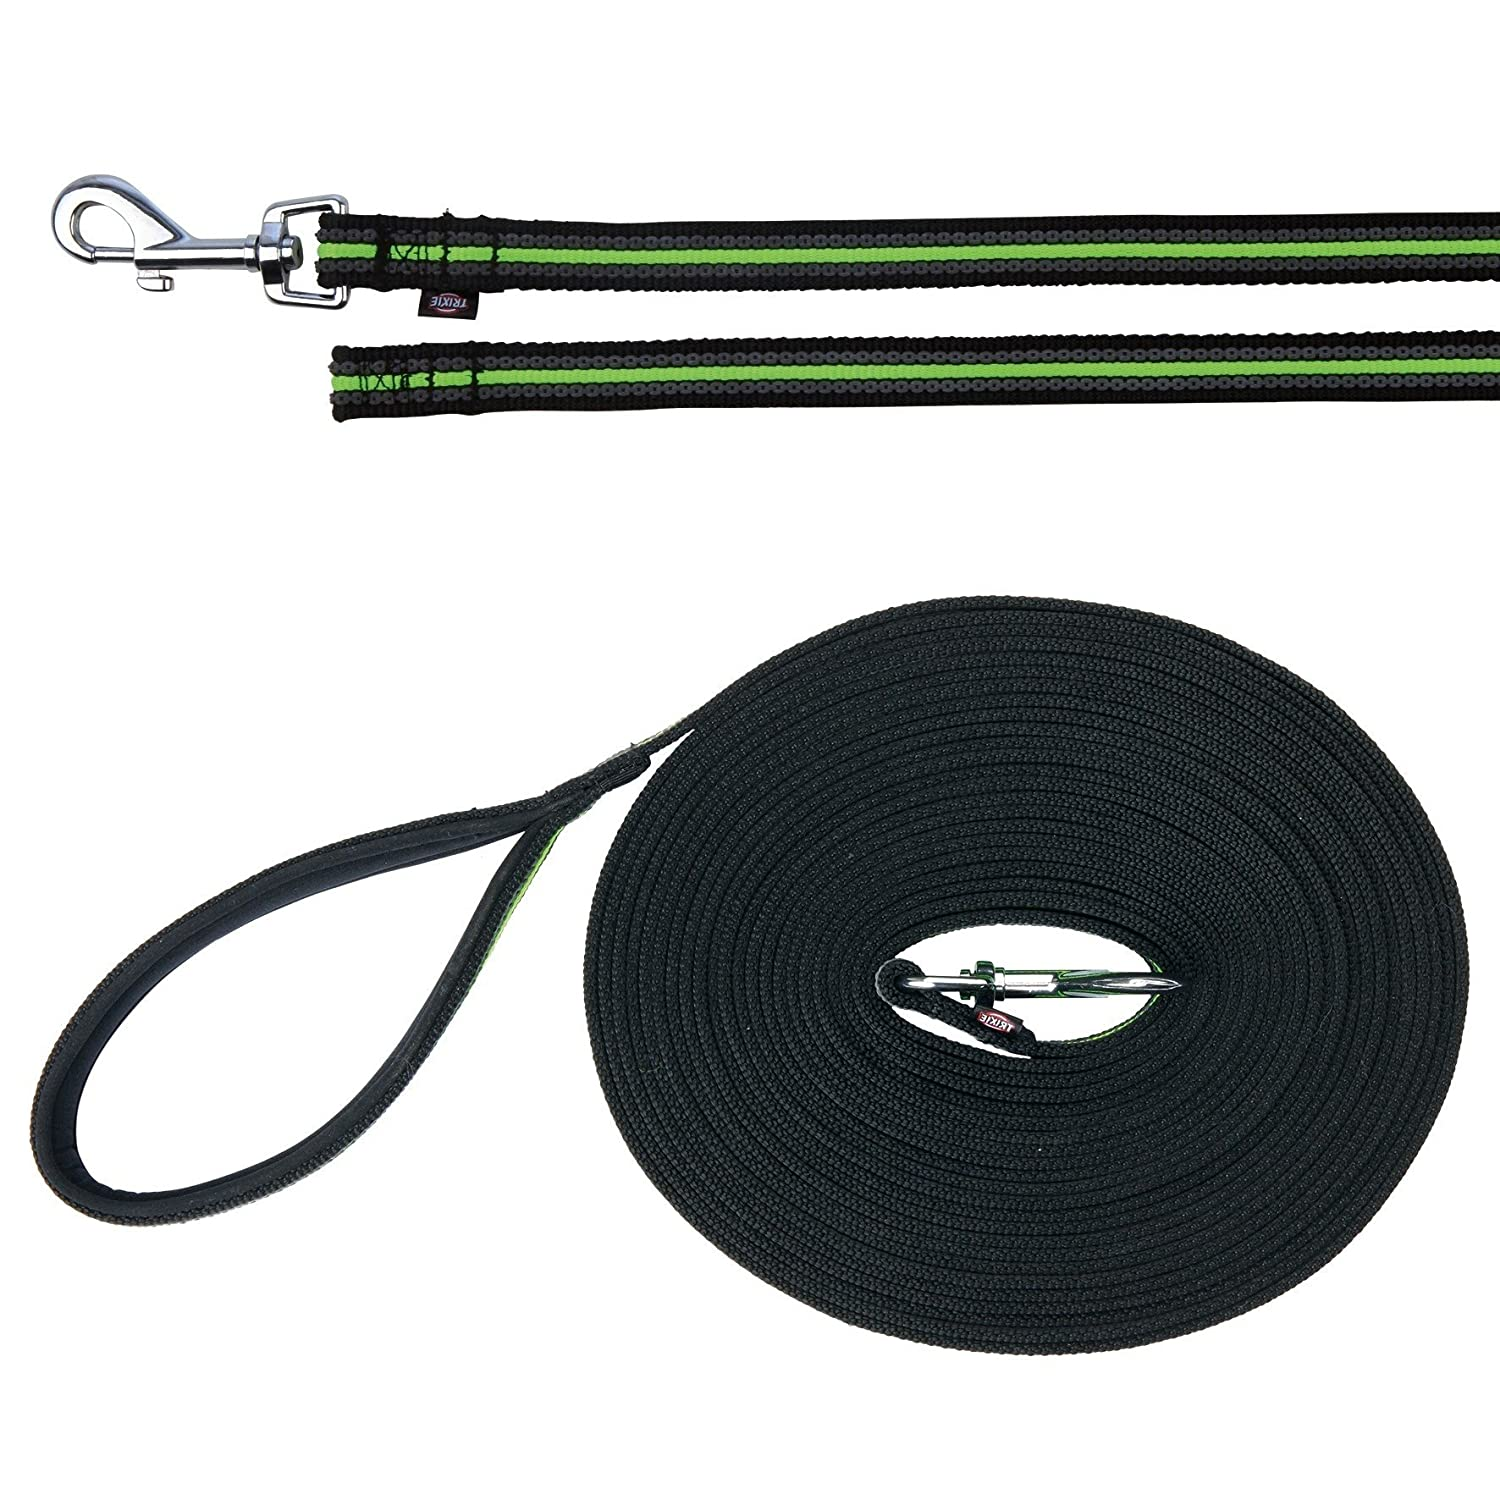 Black Green 49 ft Black Green 49 ft Trixie Fusion Tracking Dog Leash (49 ft) (Black Green)